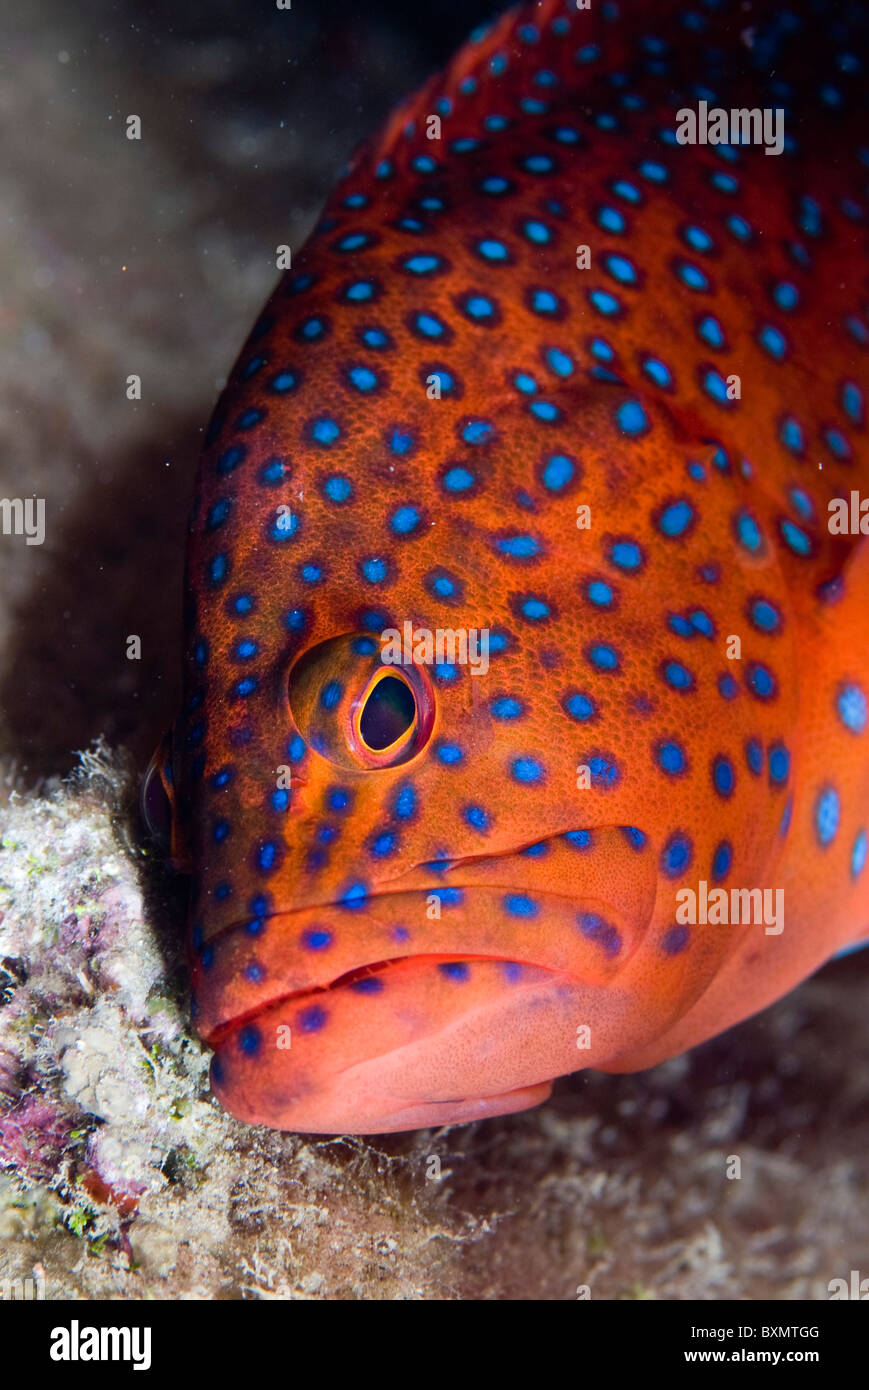 Coral grouper, Nuweiba, Sinai, Egypt, Red Sea, Indian Ocean - Stock Image